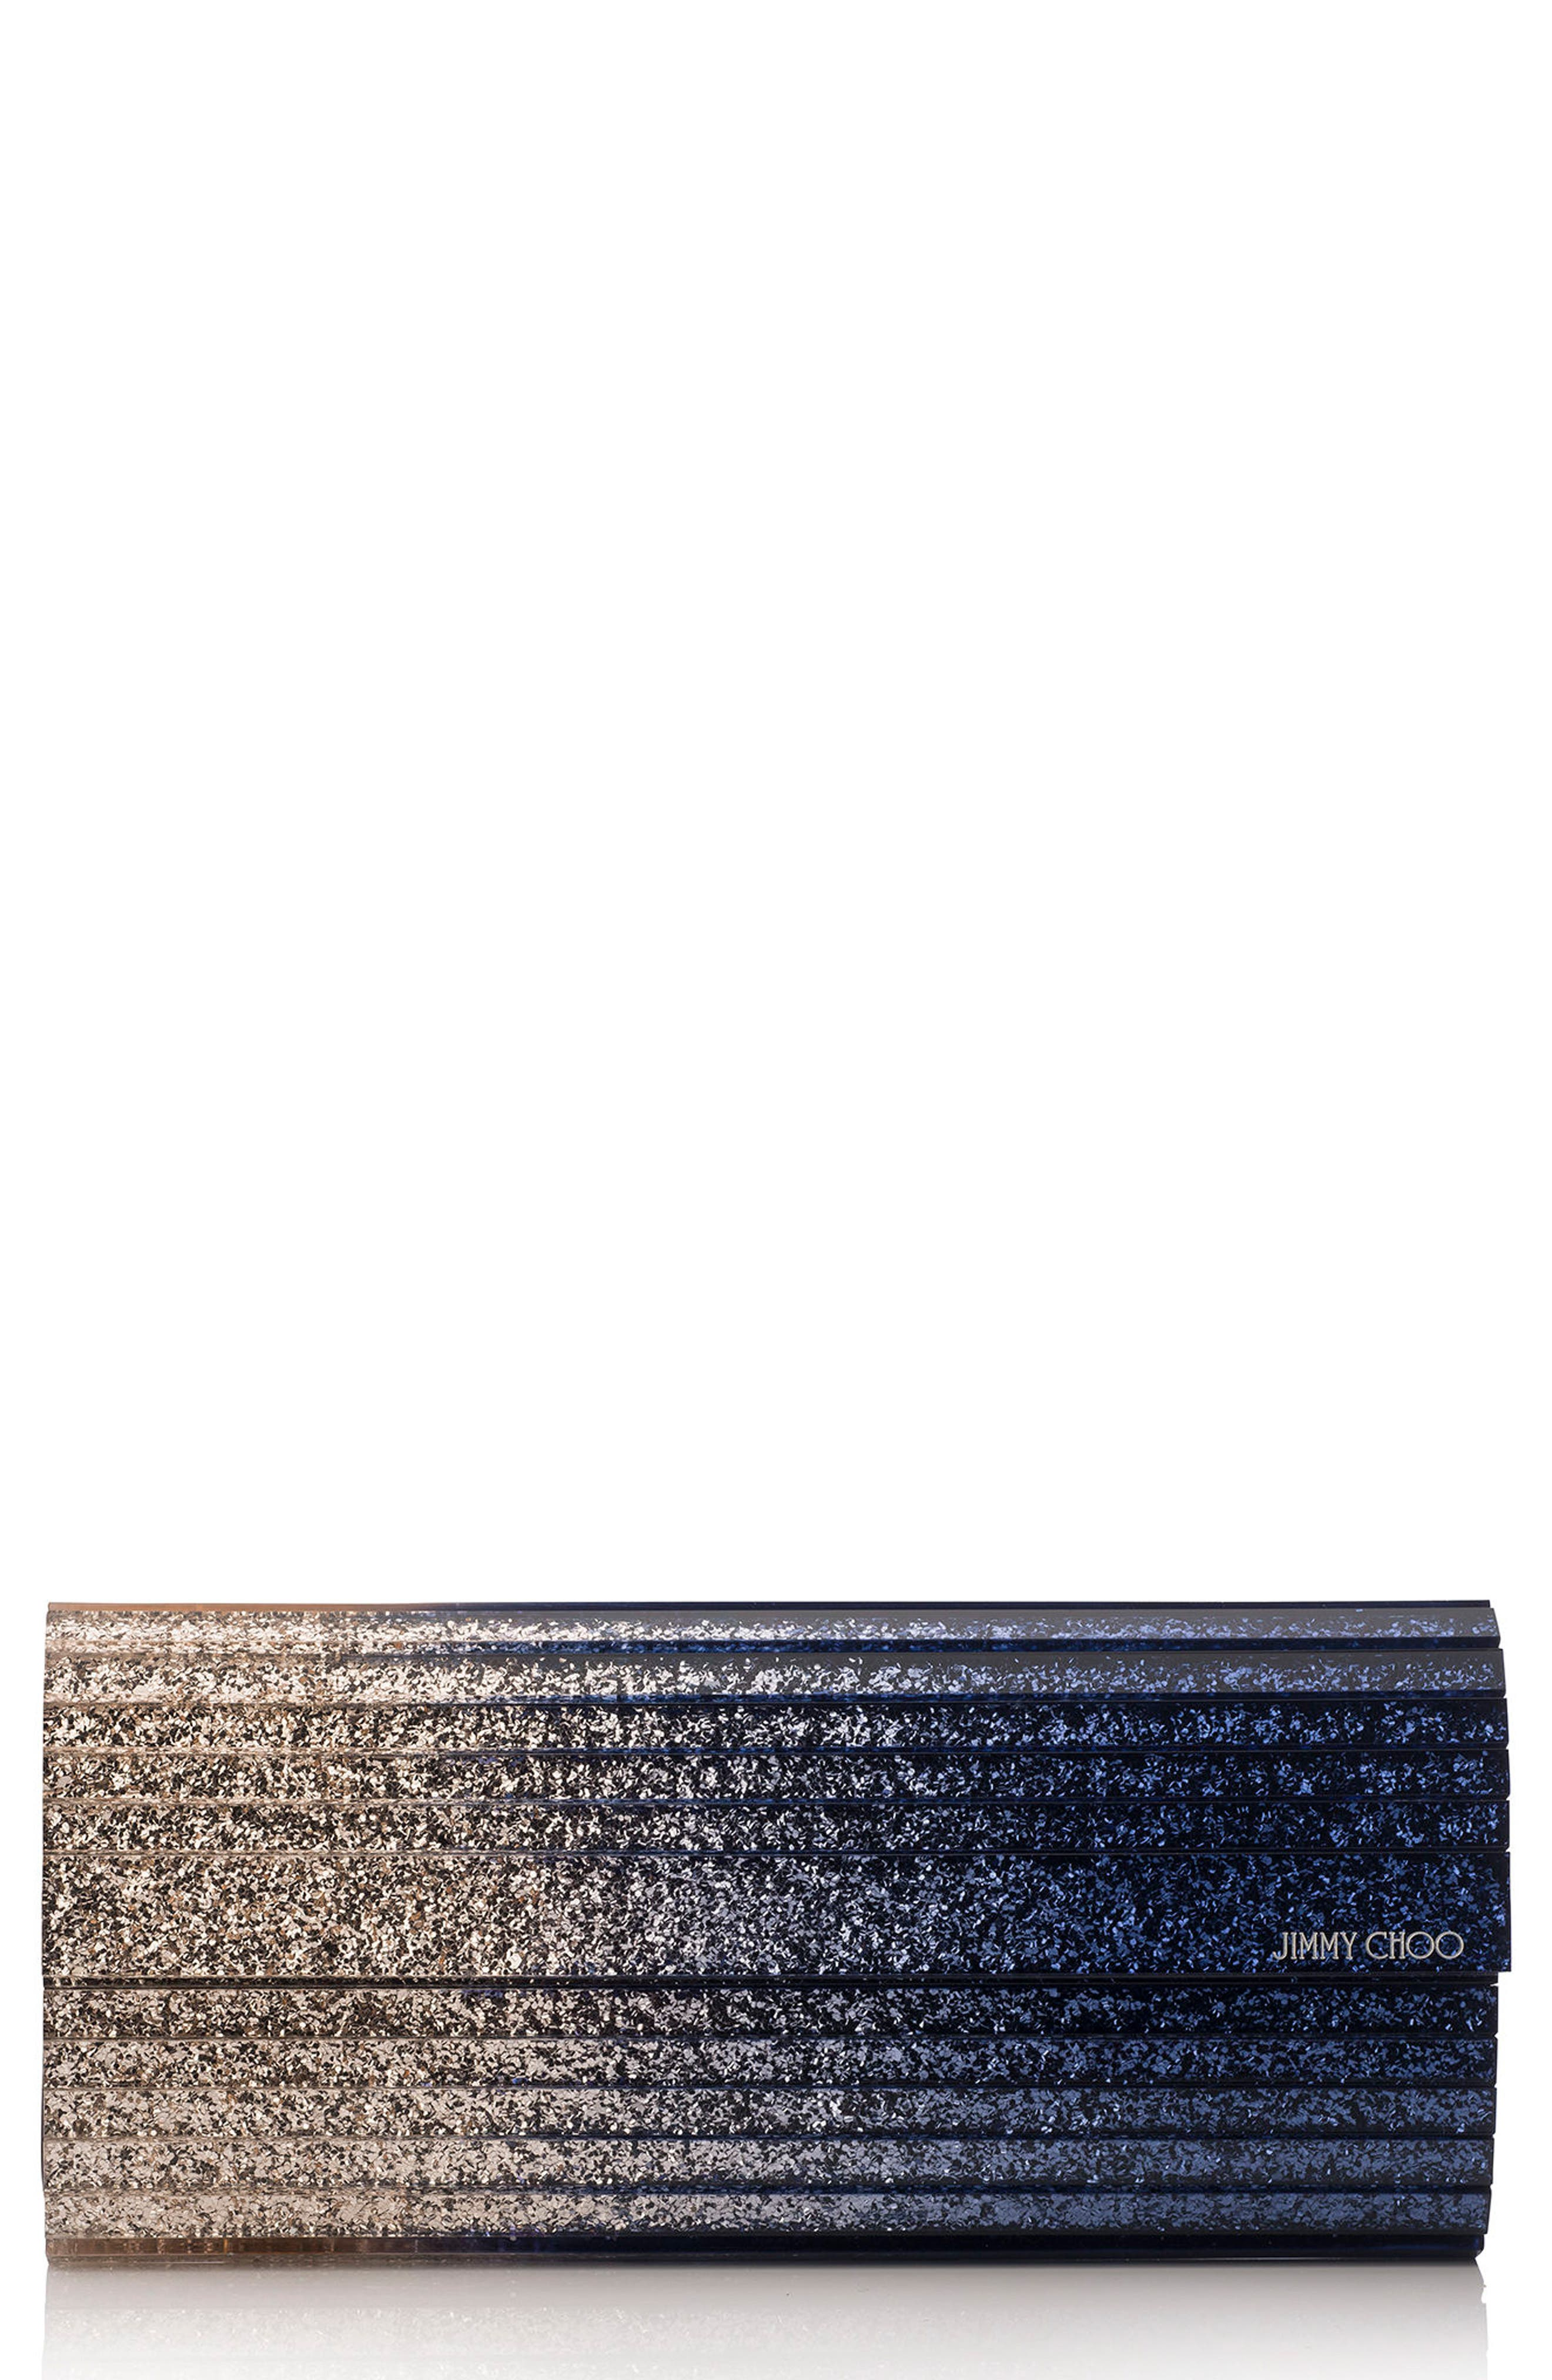 'Sweetie' Clutch,                         Main,                         color, Silver/ Navy